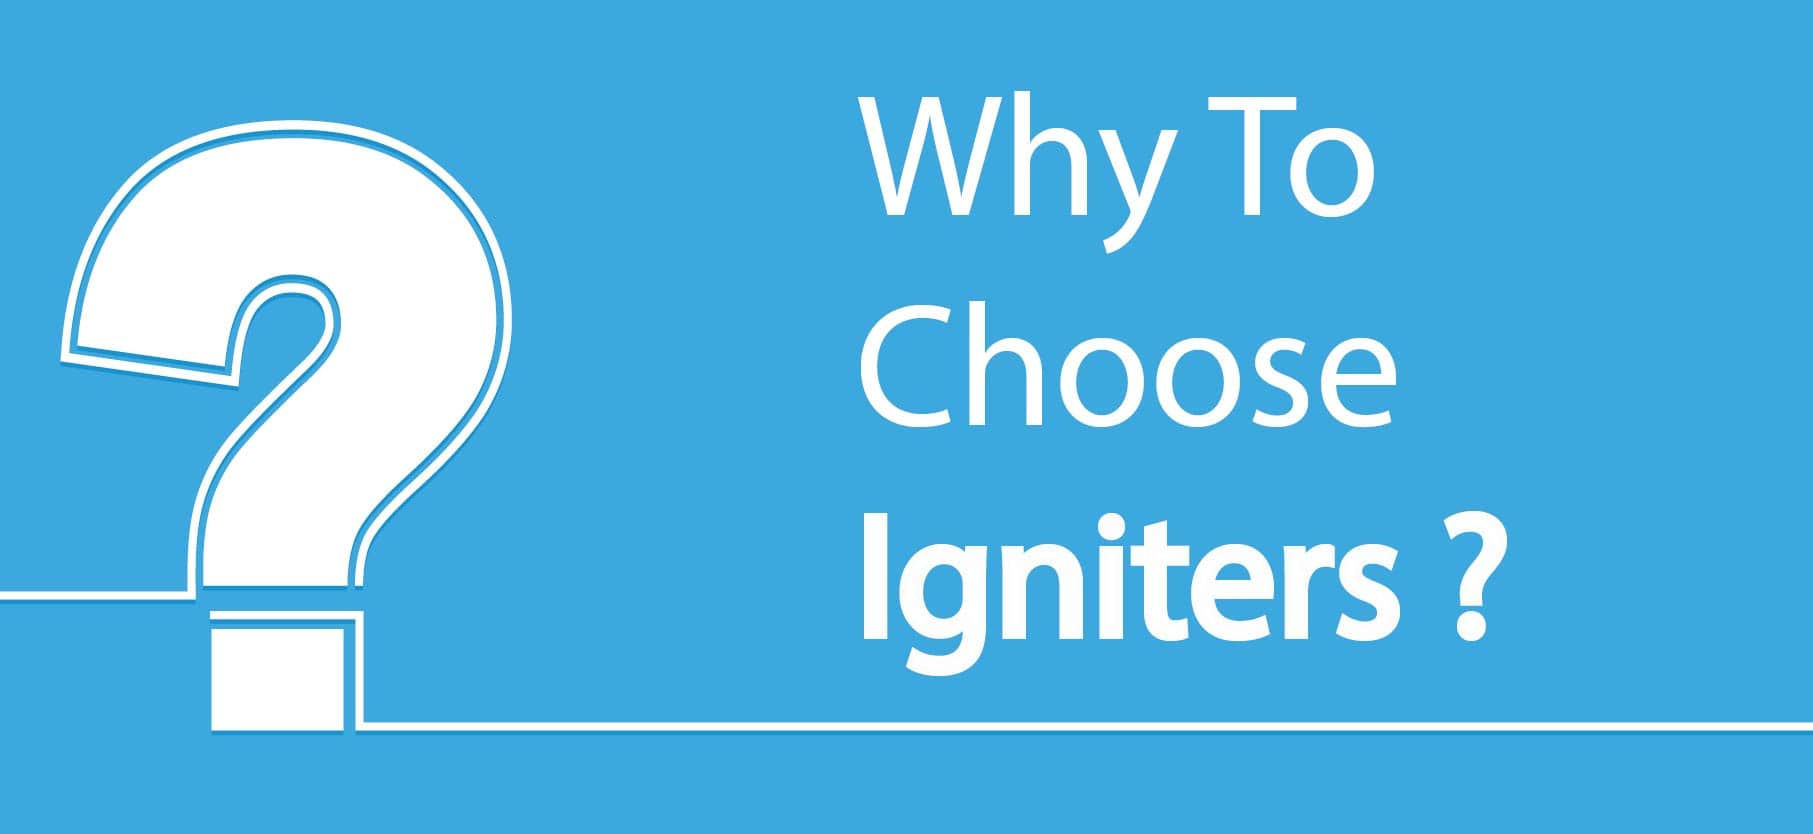 Why to Choose Igniters?